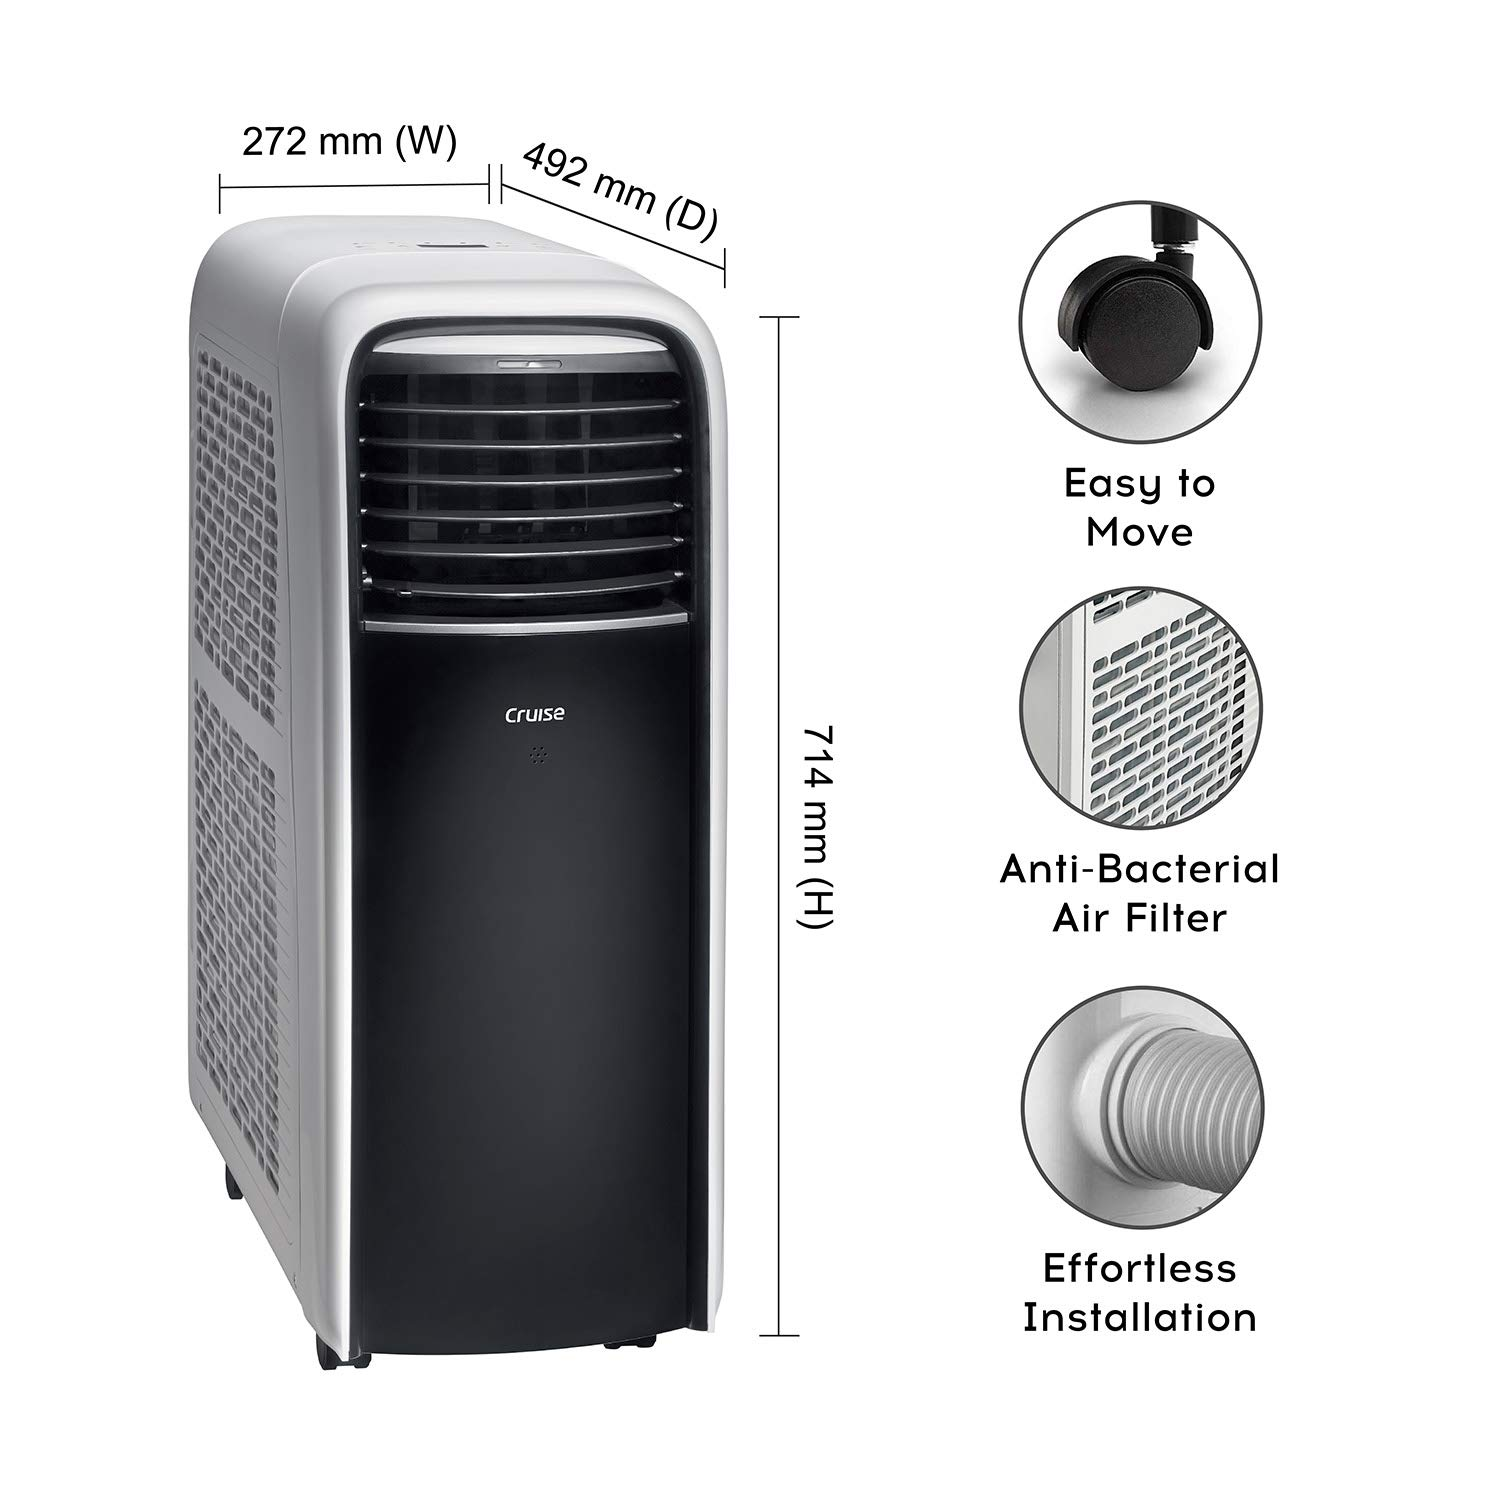 Top 7 Portable Air Conditioners To Buy in India 2021